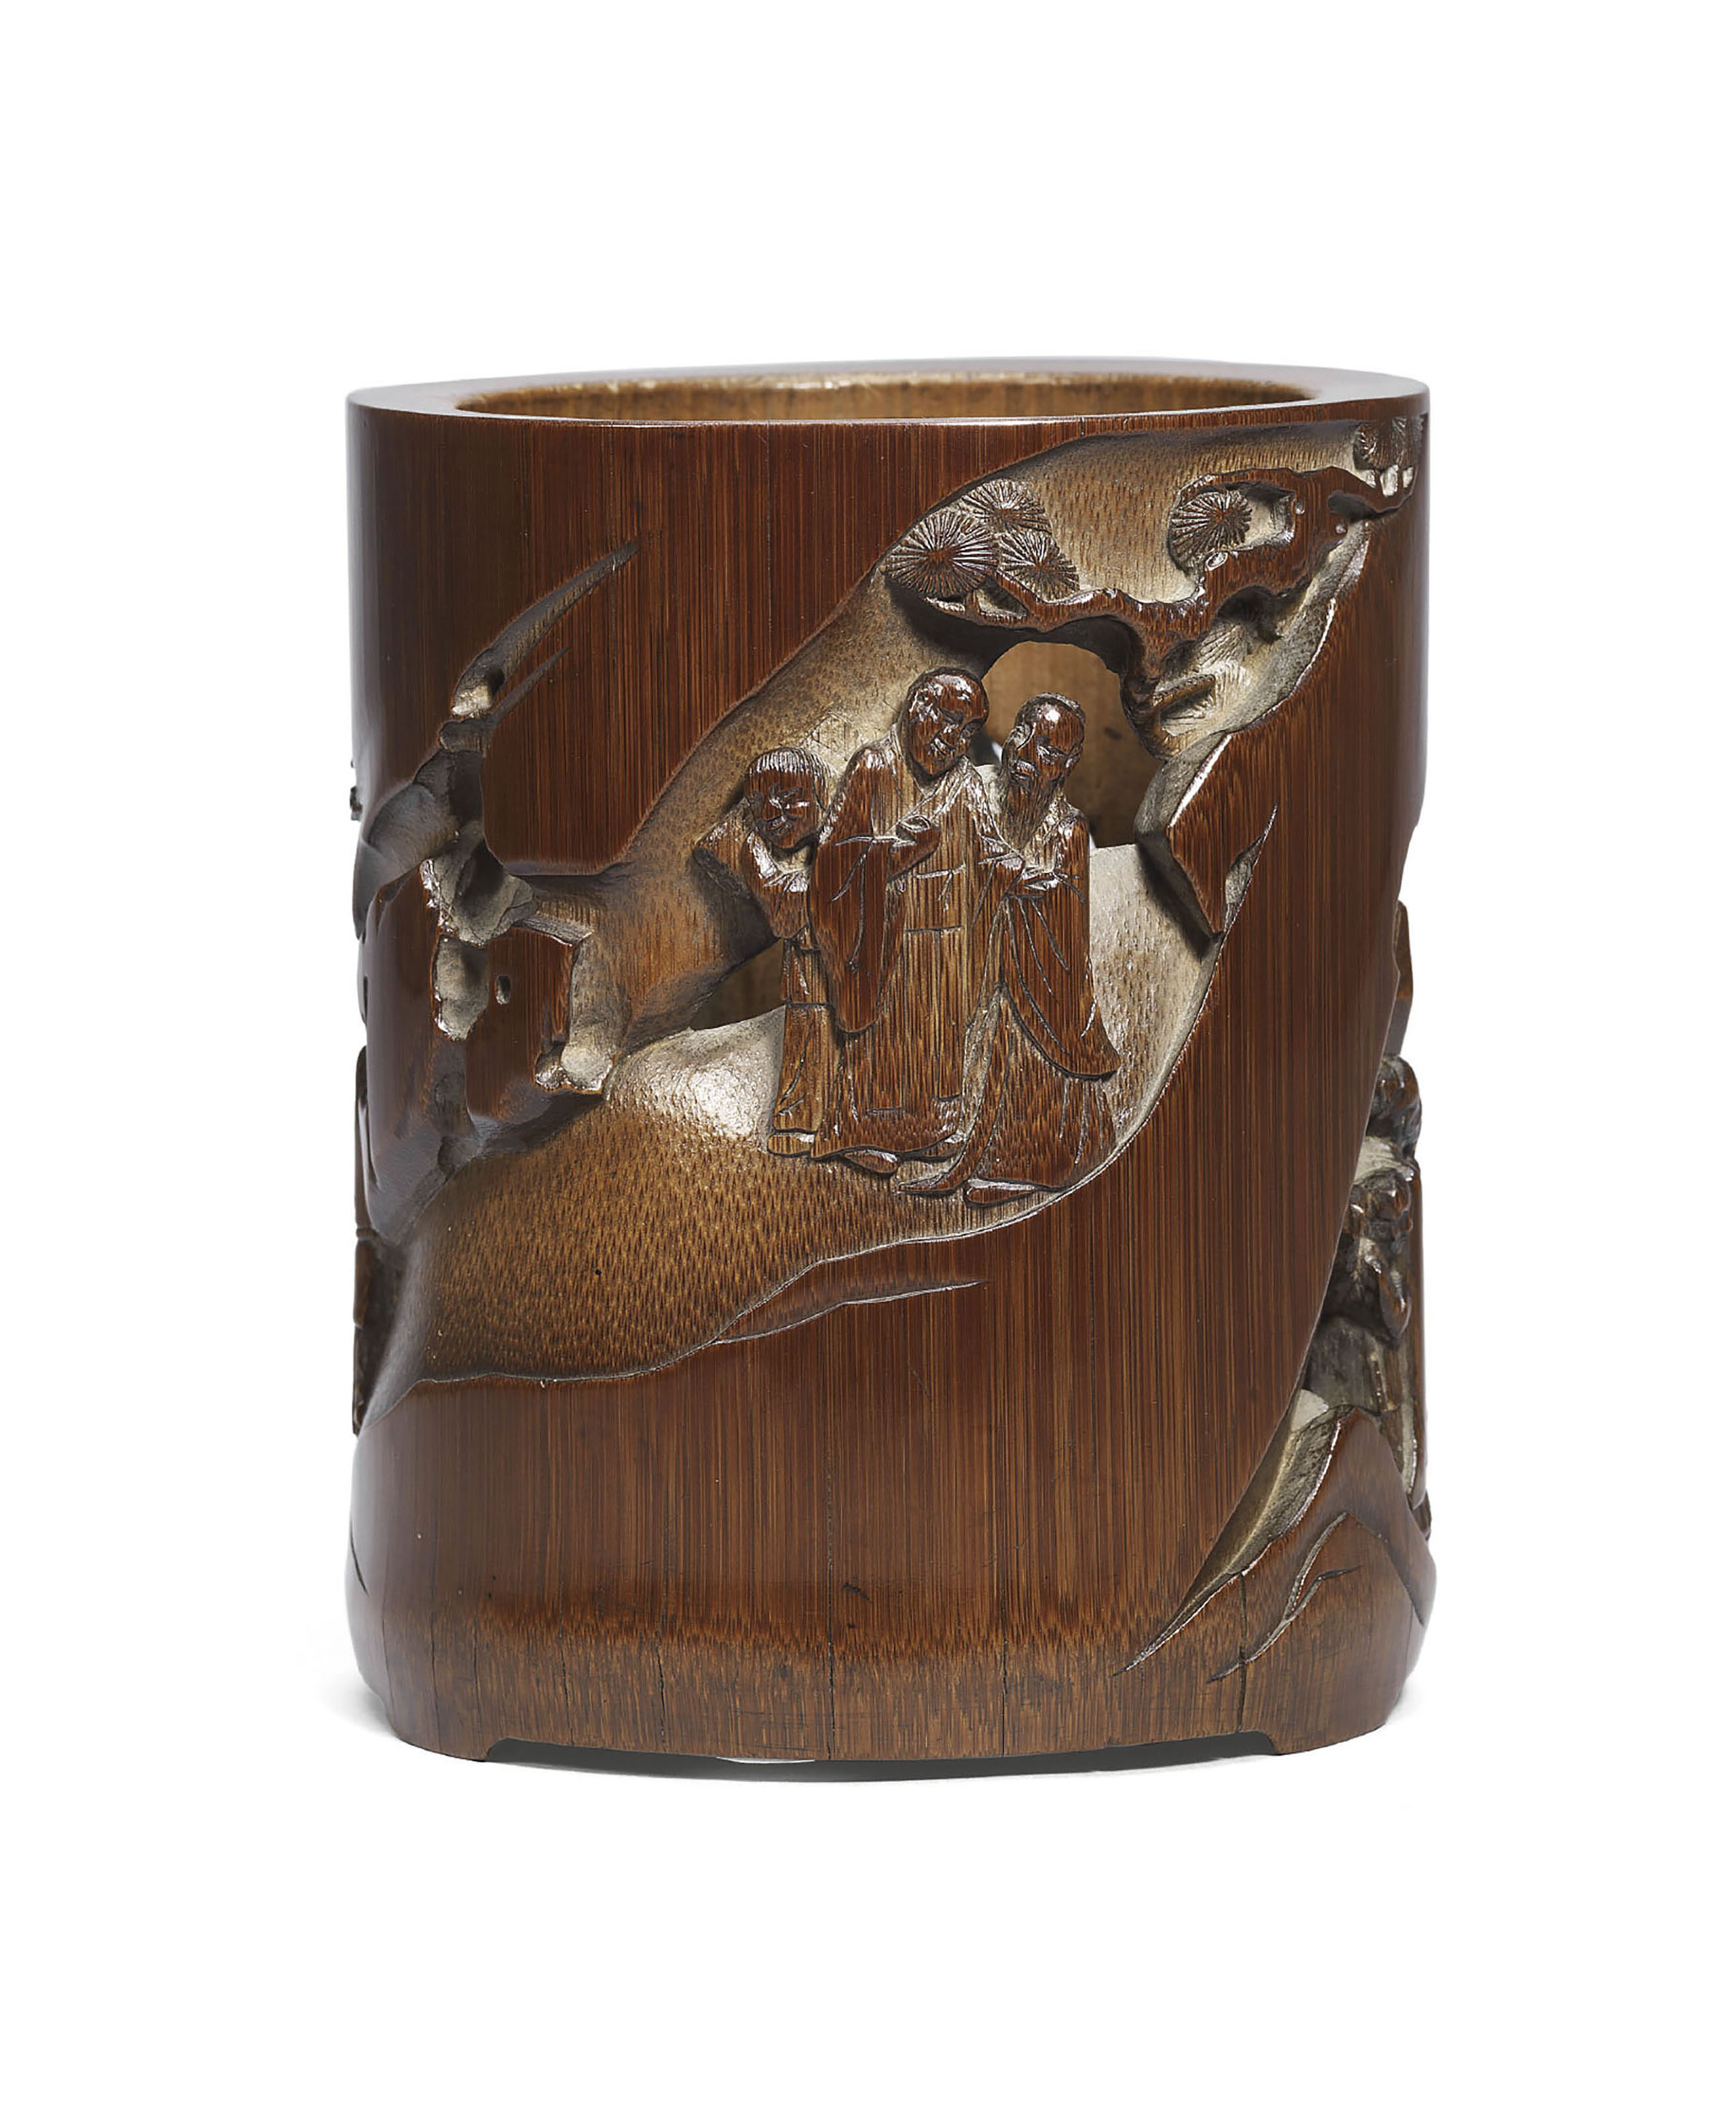 A RETICULATED BAMBOO BRUSH POT